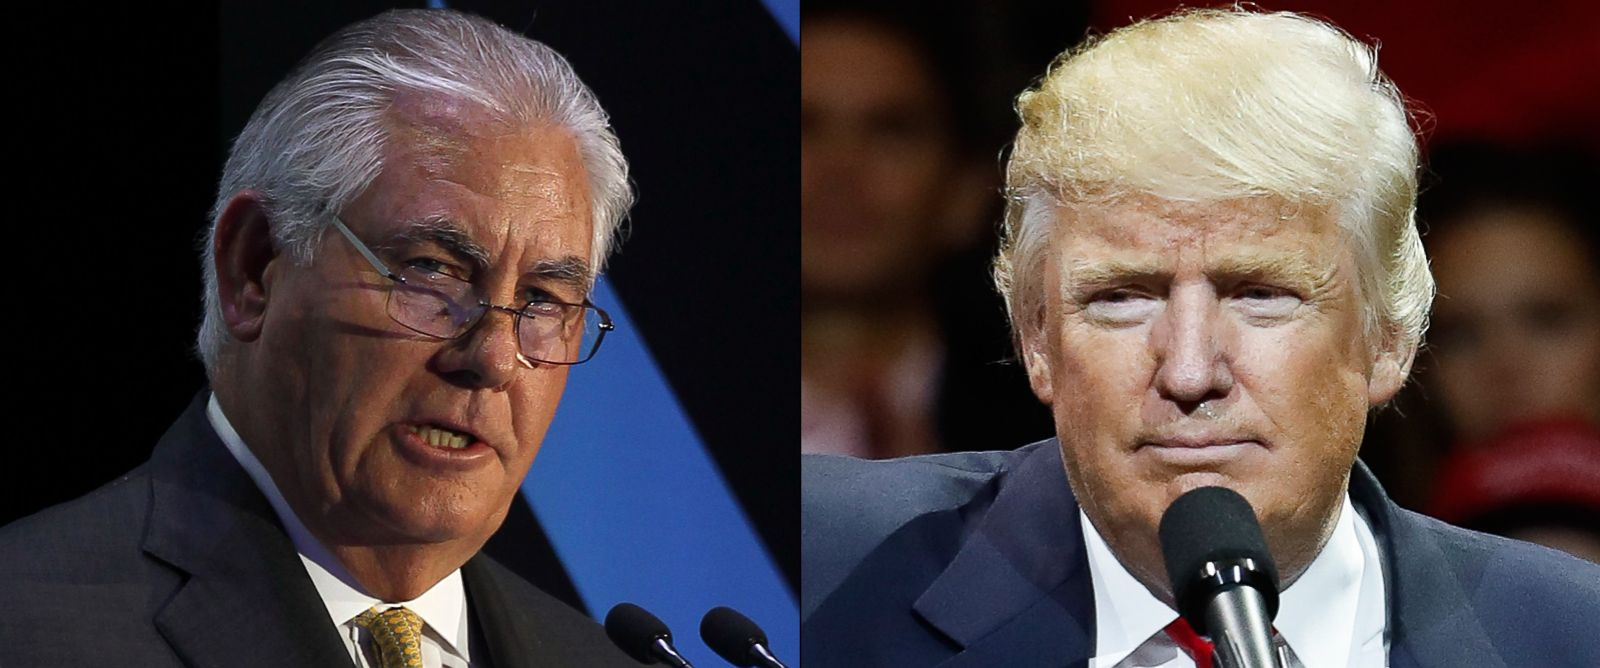 http://a.abcnews.com/images/Politics/AP-getty-tillerson-trump-split-01-as-161206_12x5_1600.jpg